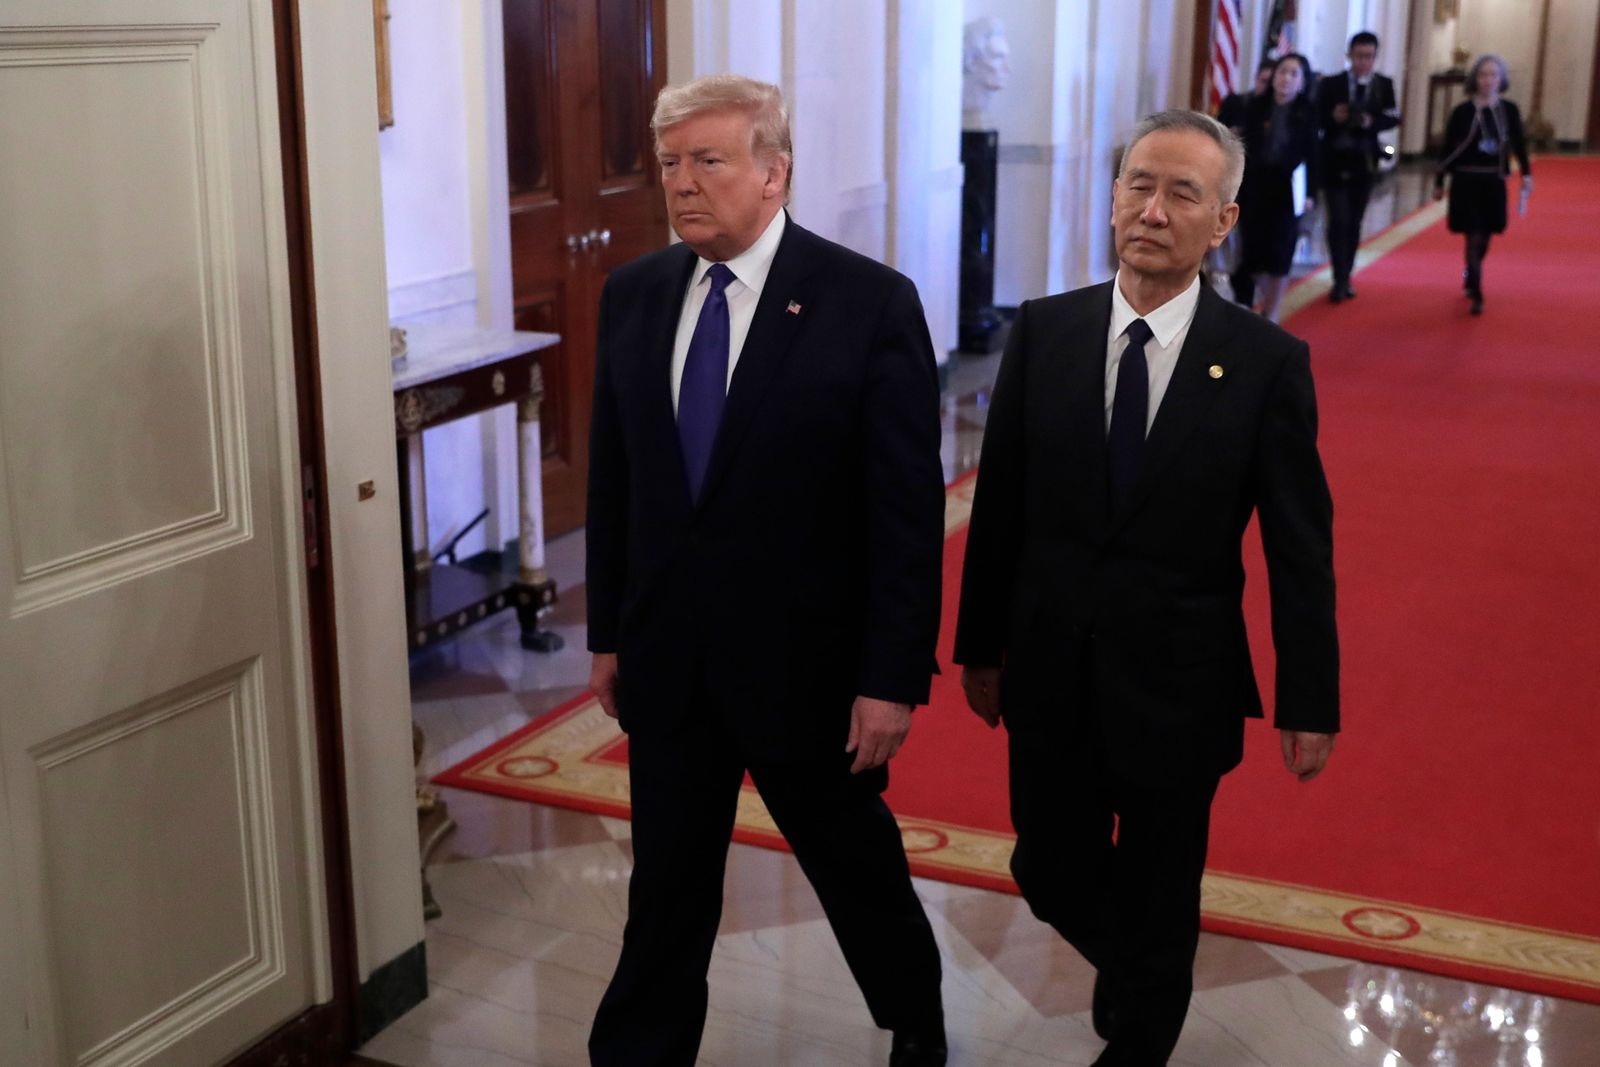 President Donald Trump arrives with Chinese Vice Premier Liu He to sign a trade agreement in the East Room of the White House, Wednesday, Jan. 15, 2020, in Washington. (AP Photo/Evan Vucci)